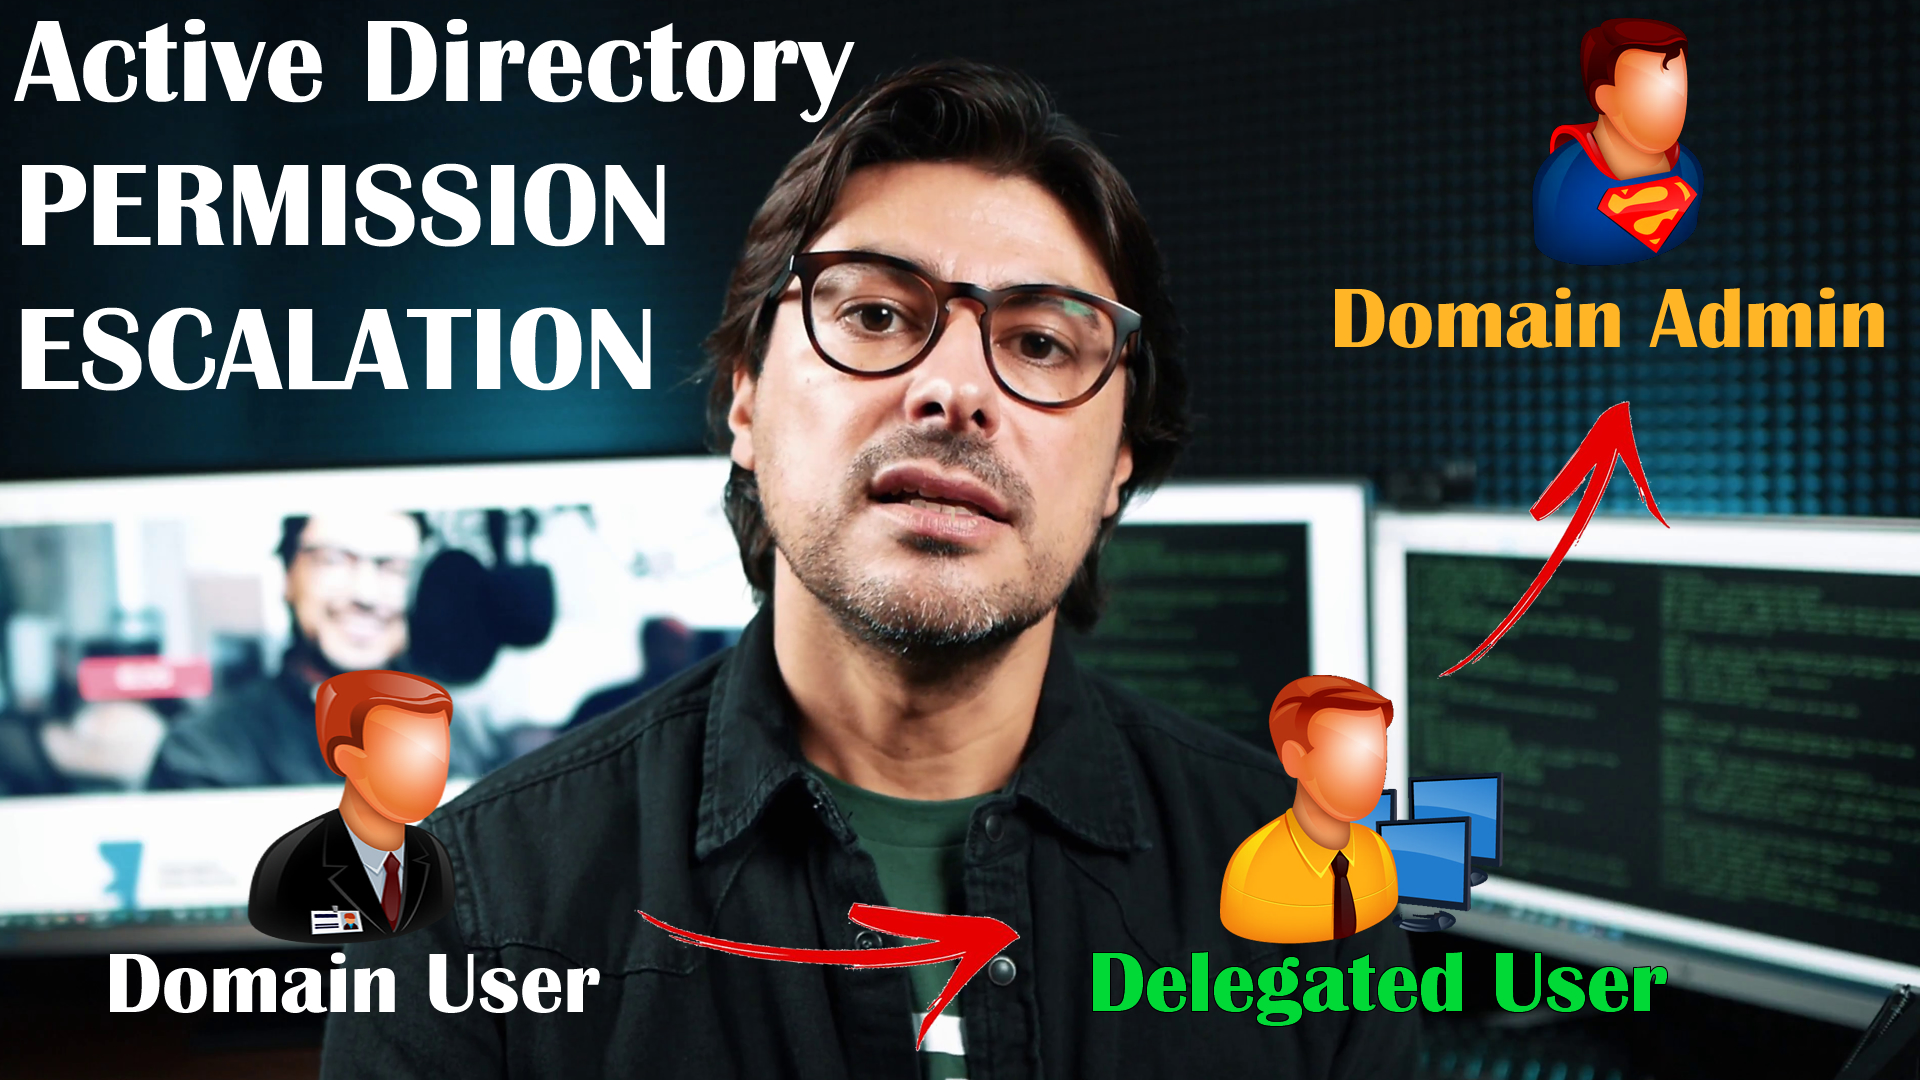 Active Directory Permission Escalation